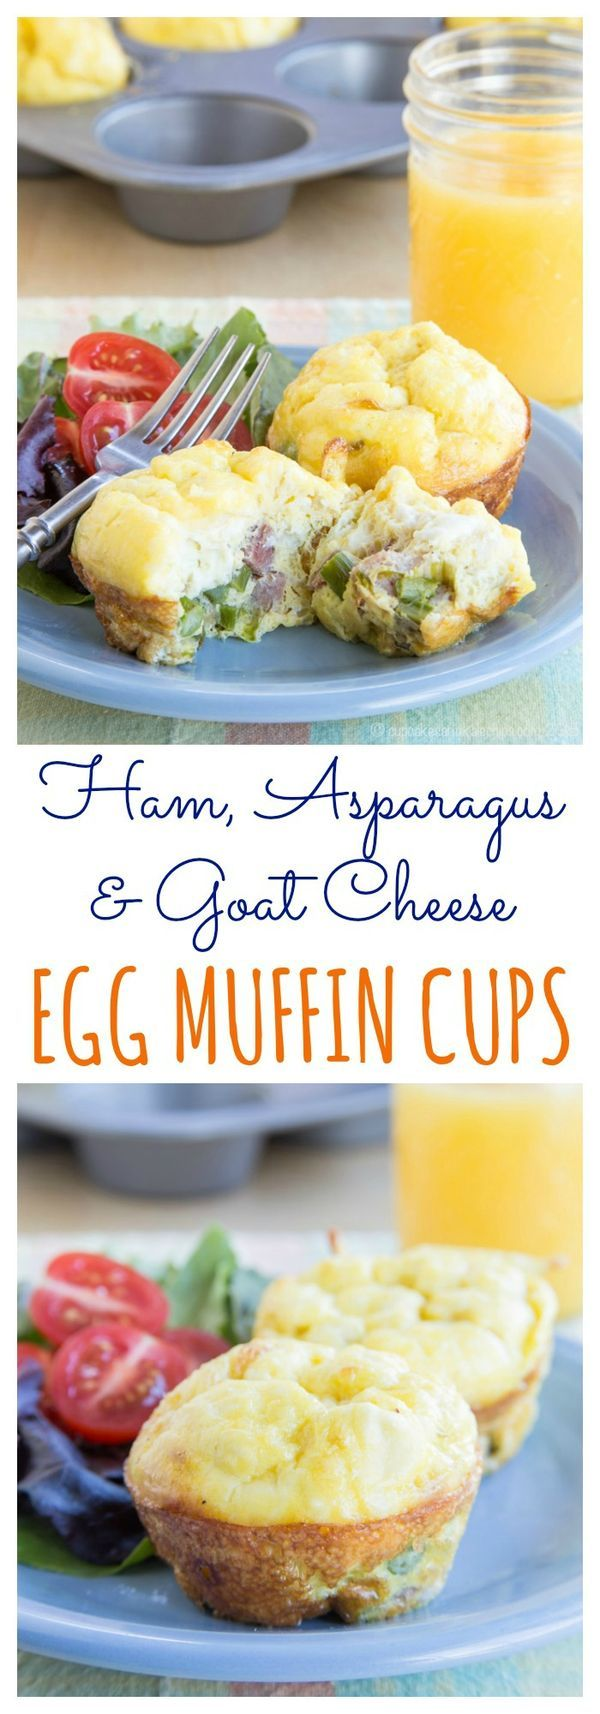 Ham, Asparagus & Goat Cheese Egg Muffin Cups -  mini individual quiche or frittata perfect for brunch or for making ahead to freeze for busy mornings | cupcakesandkalechips.com | gluten free recipe #BrunchWeek